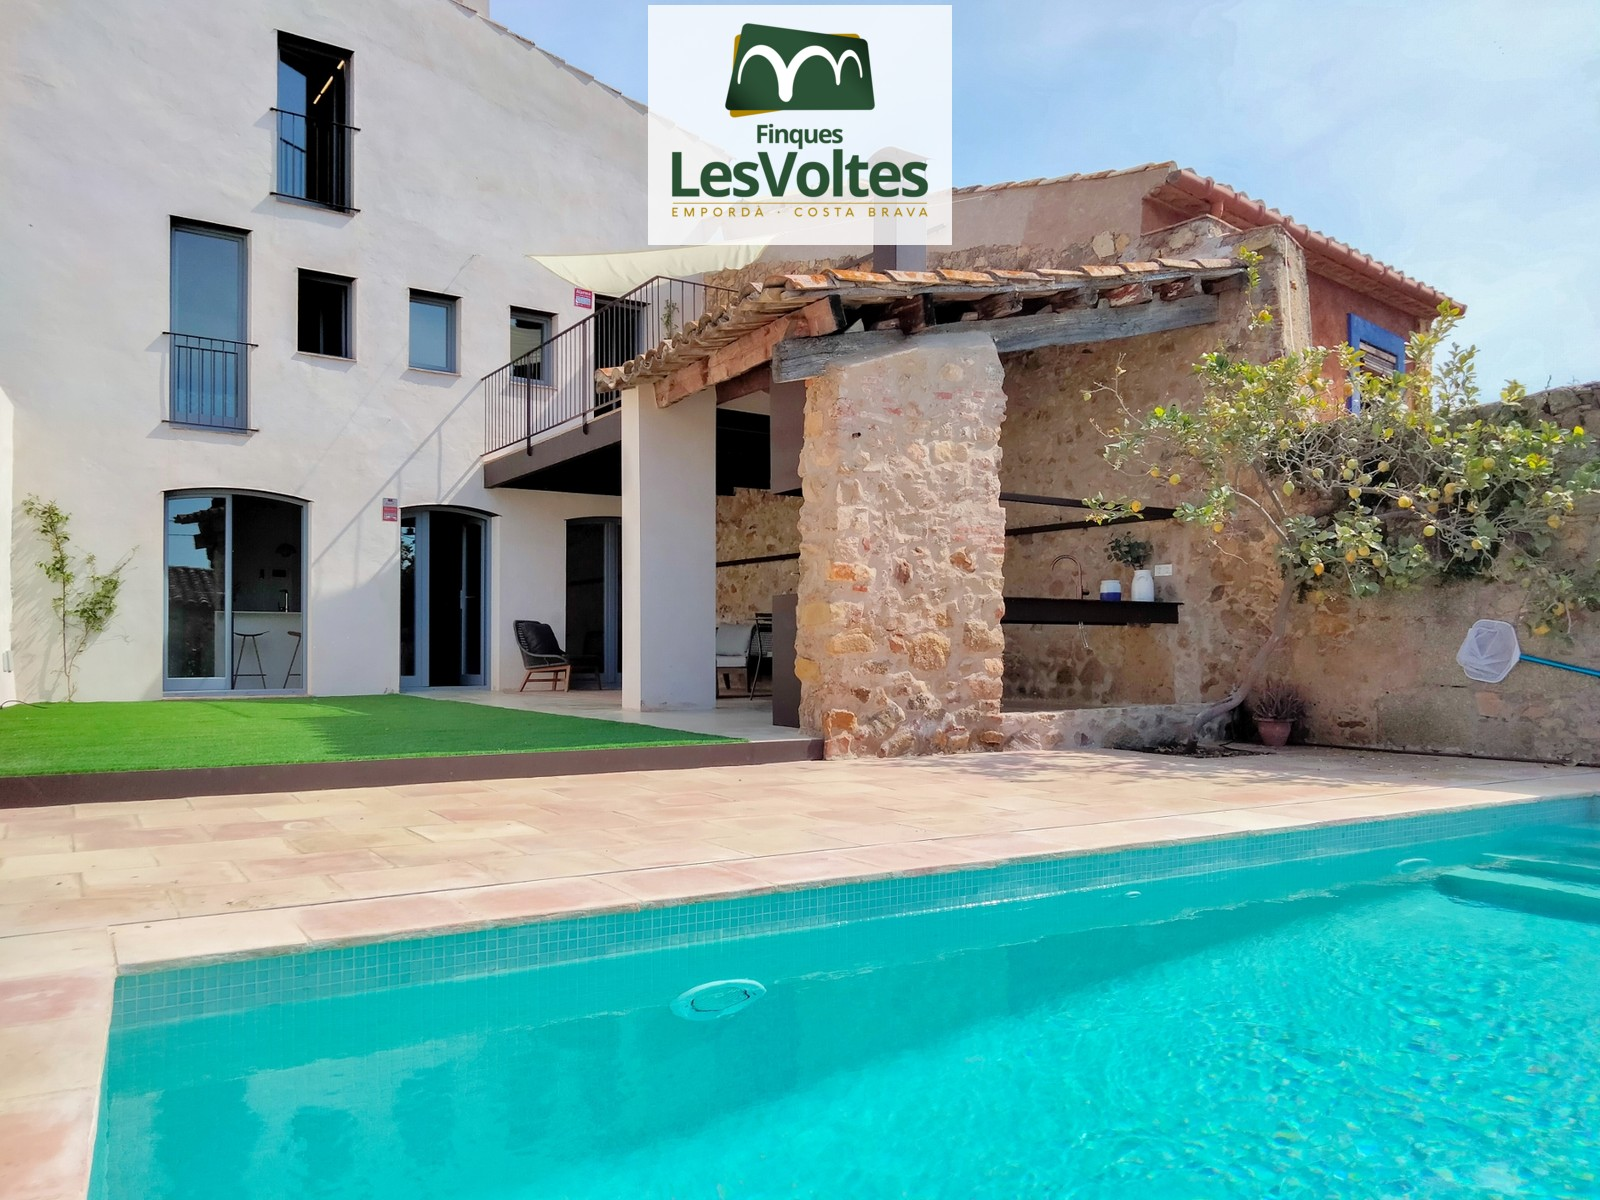 Village house with garden and pool completely renovated in Santa Cristina d 'Aro